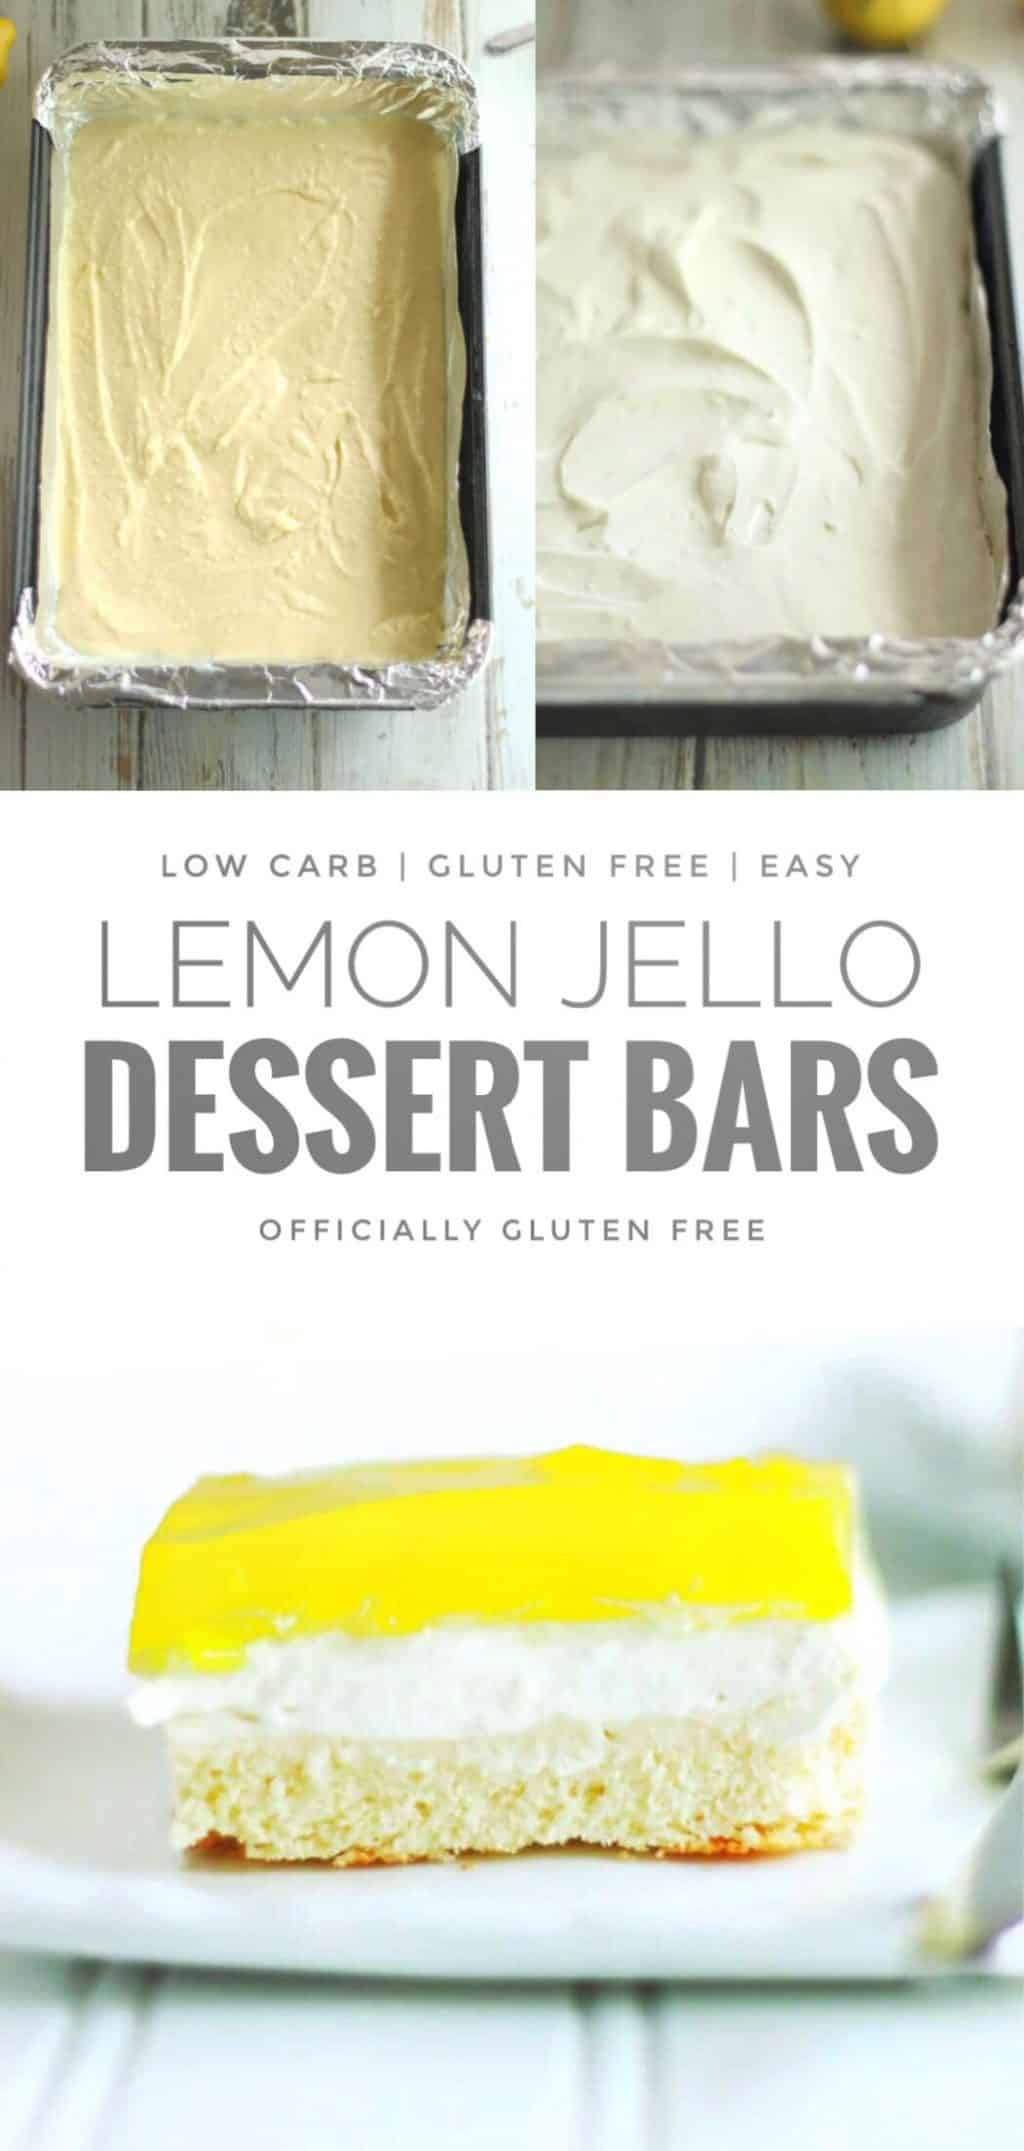 Lemon Jello Dessert Bars